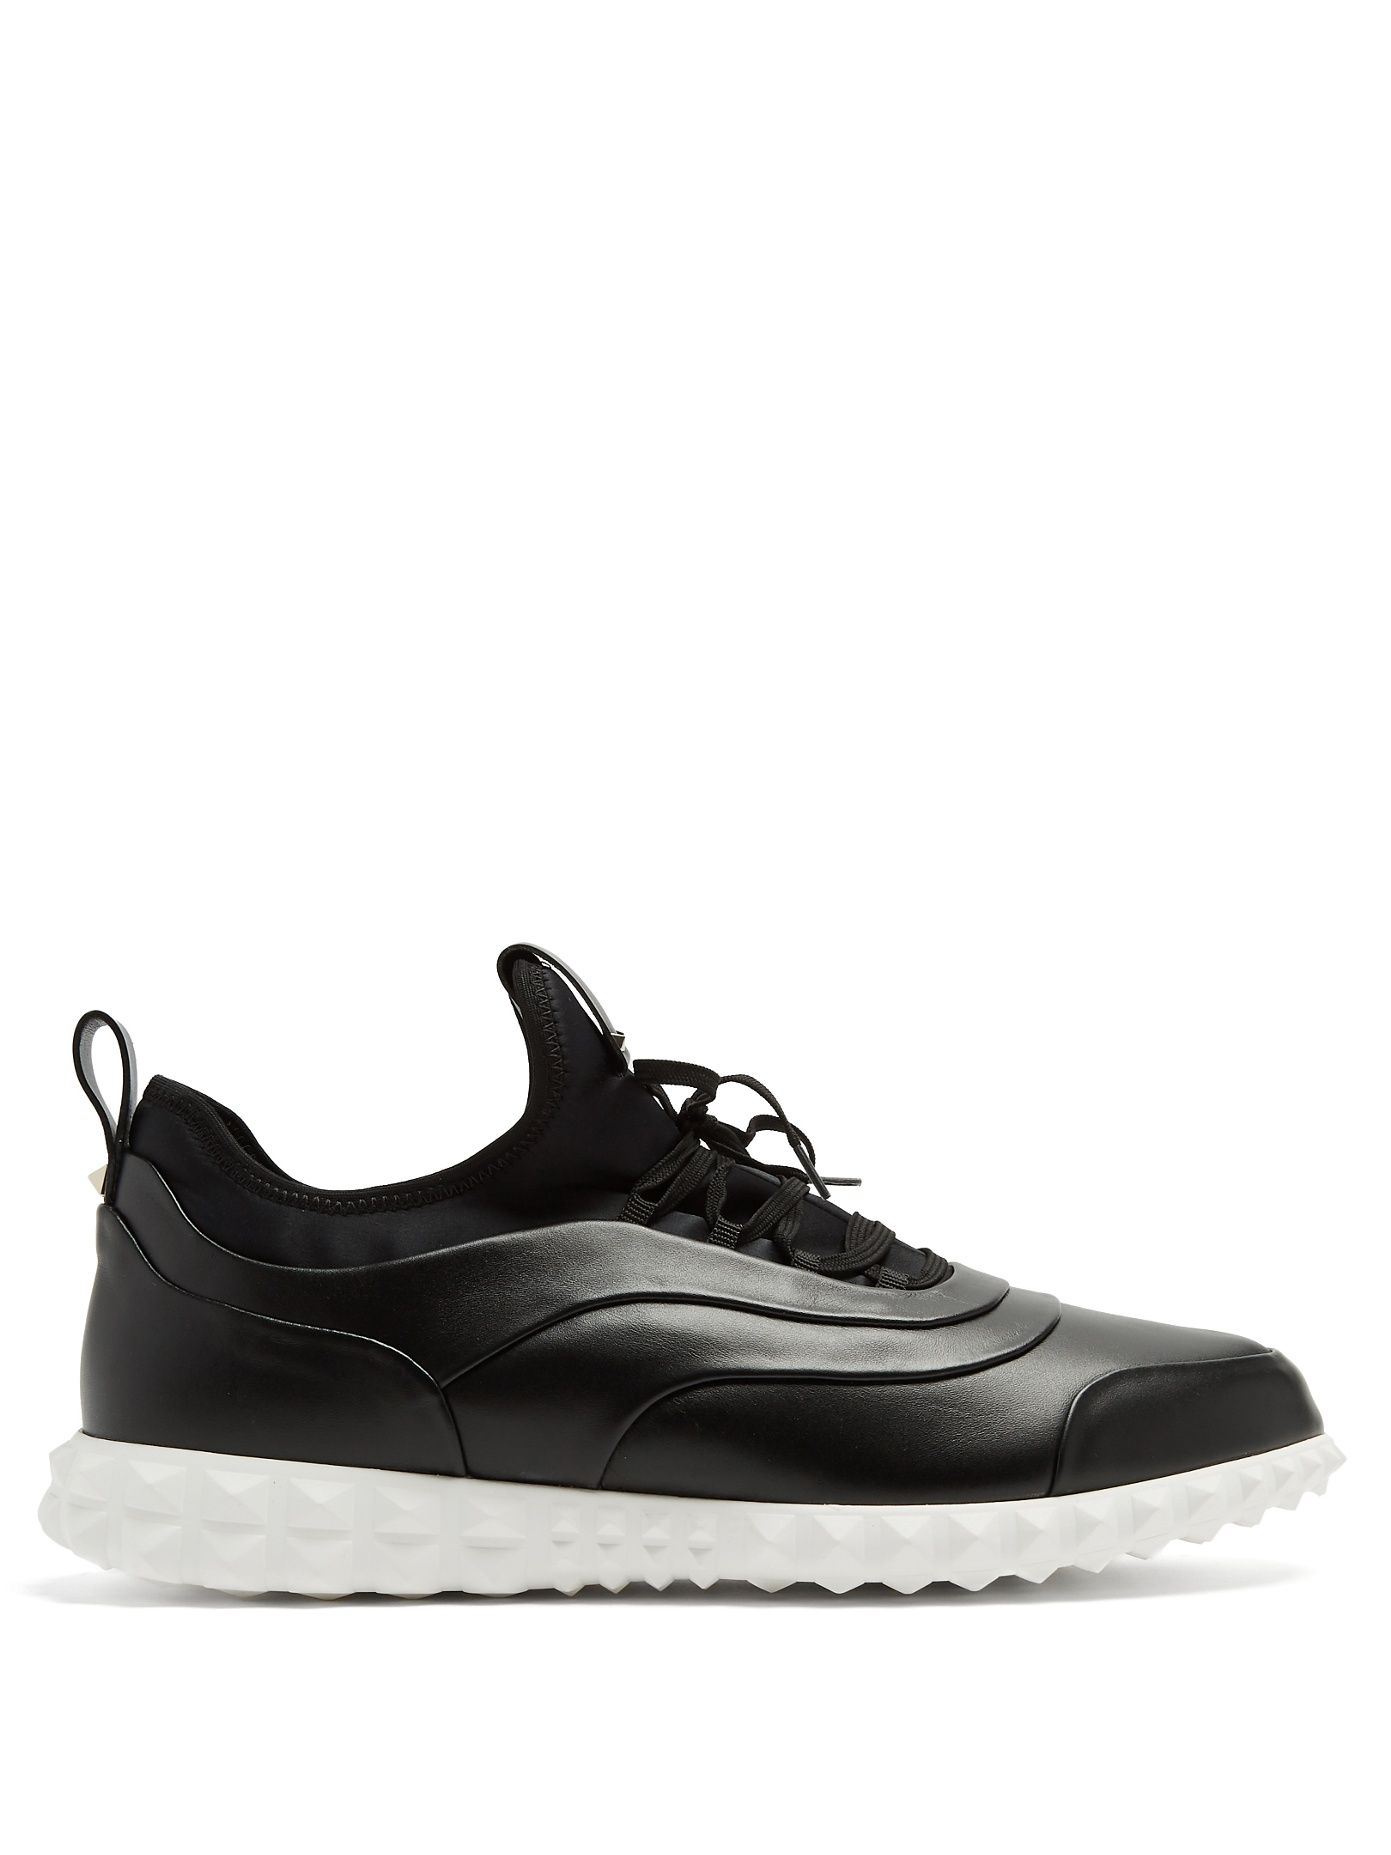 Low-top leather and neoprene trainers Valentino Clearance L0seqYxy